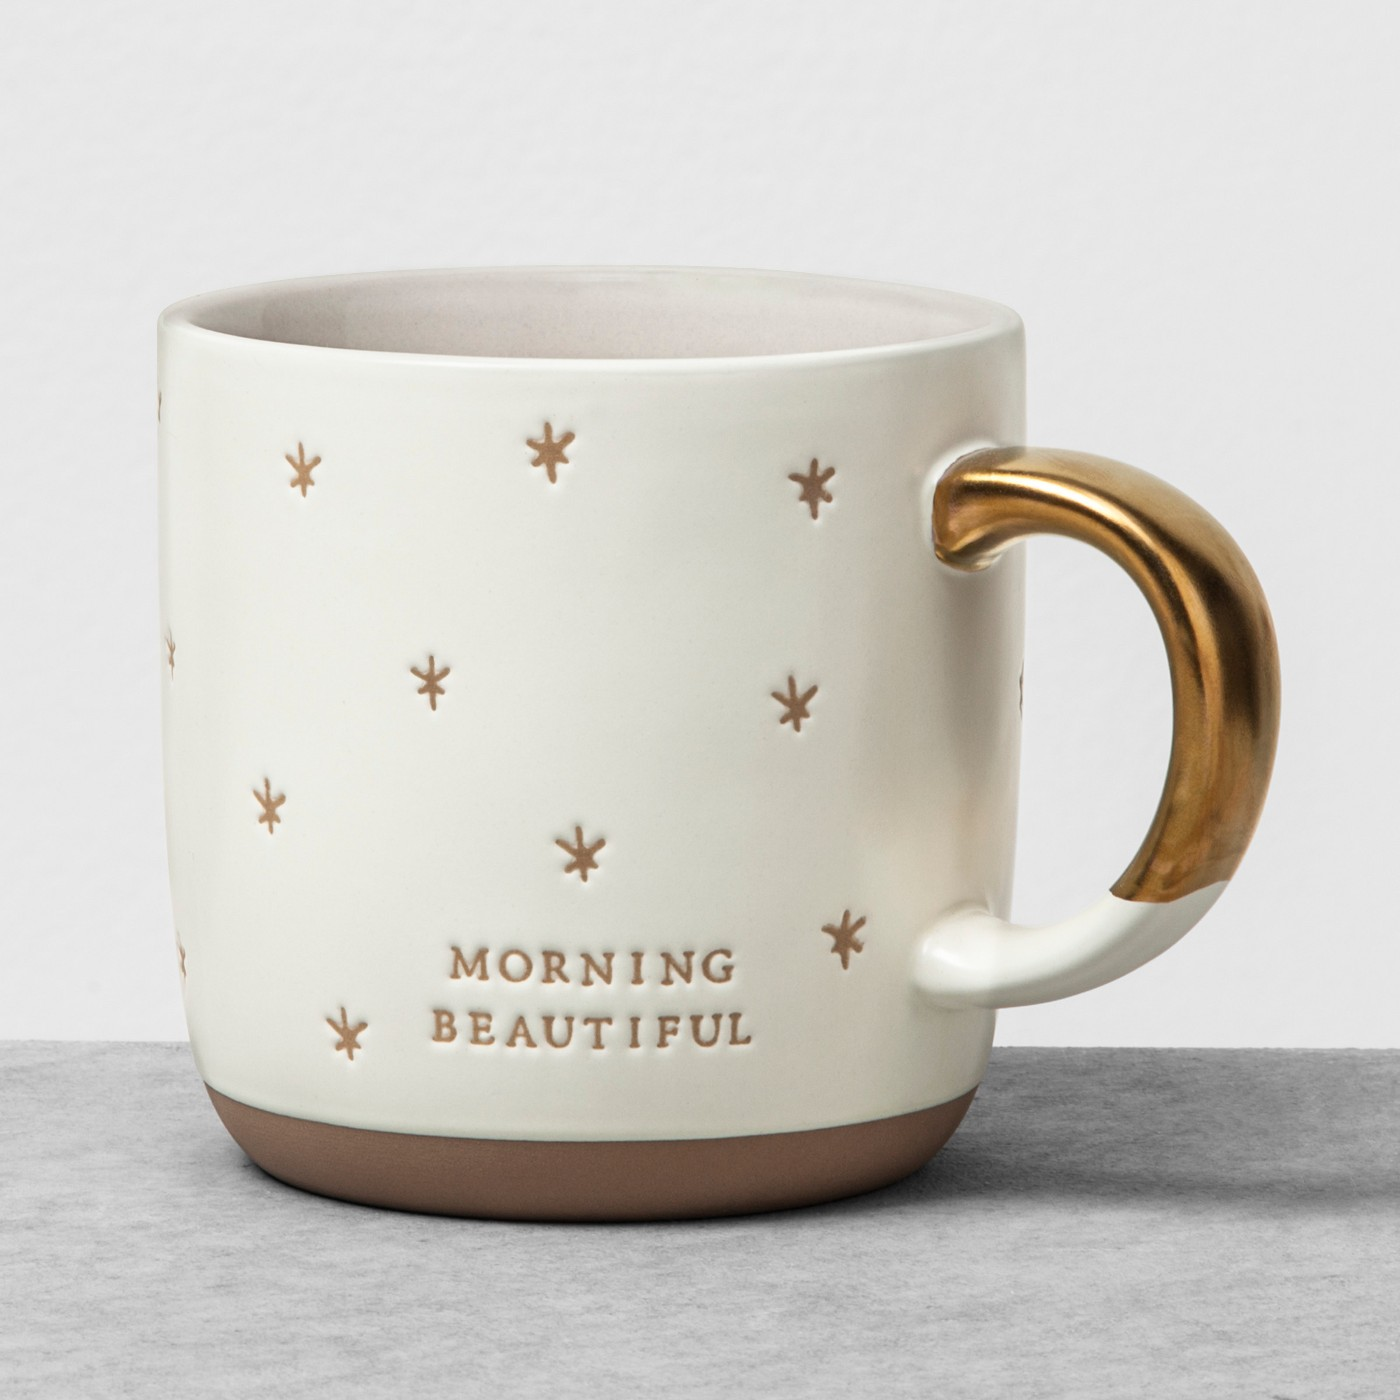 Mug Morning Beautiful - White - Hearth & Hand™ with Magnolia - image 1 of 3